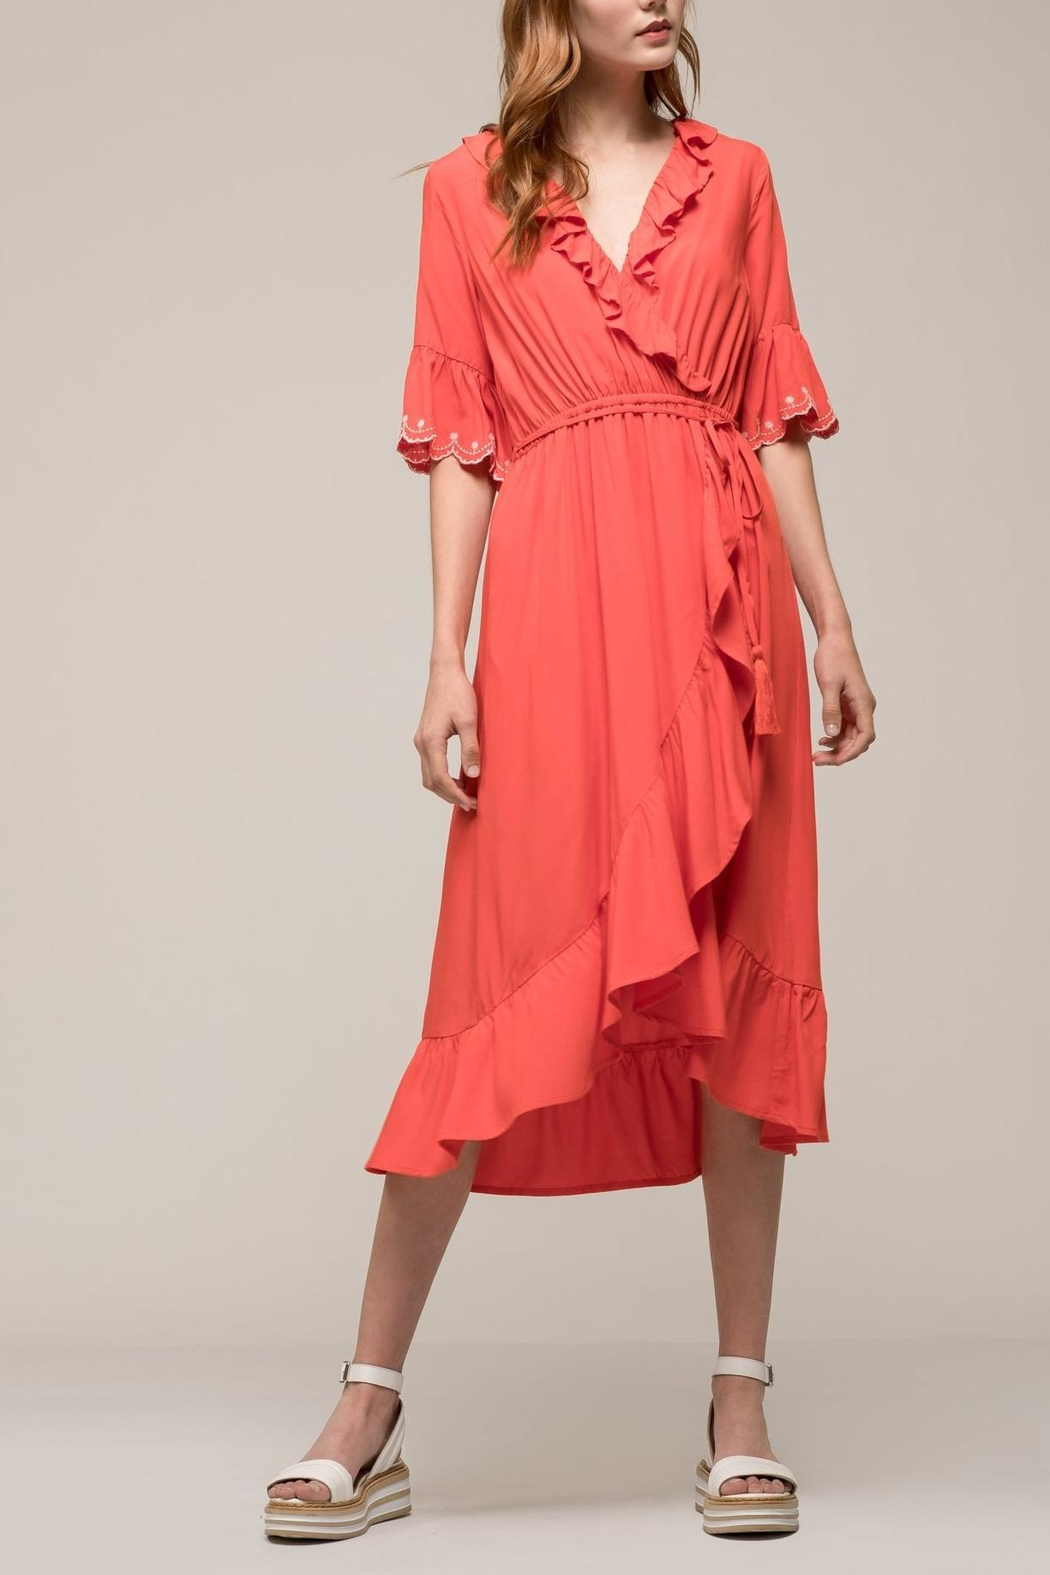 Earthy Chic Ruffle Woven Dress - Main Image